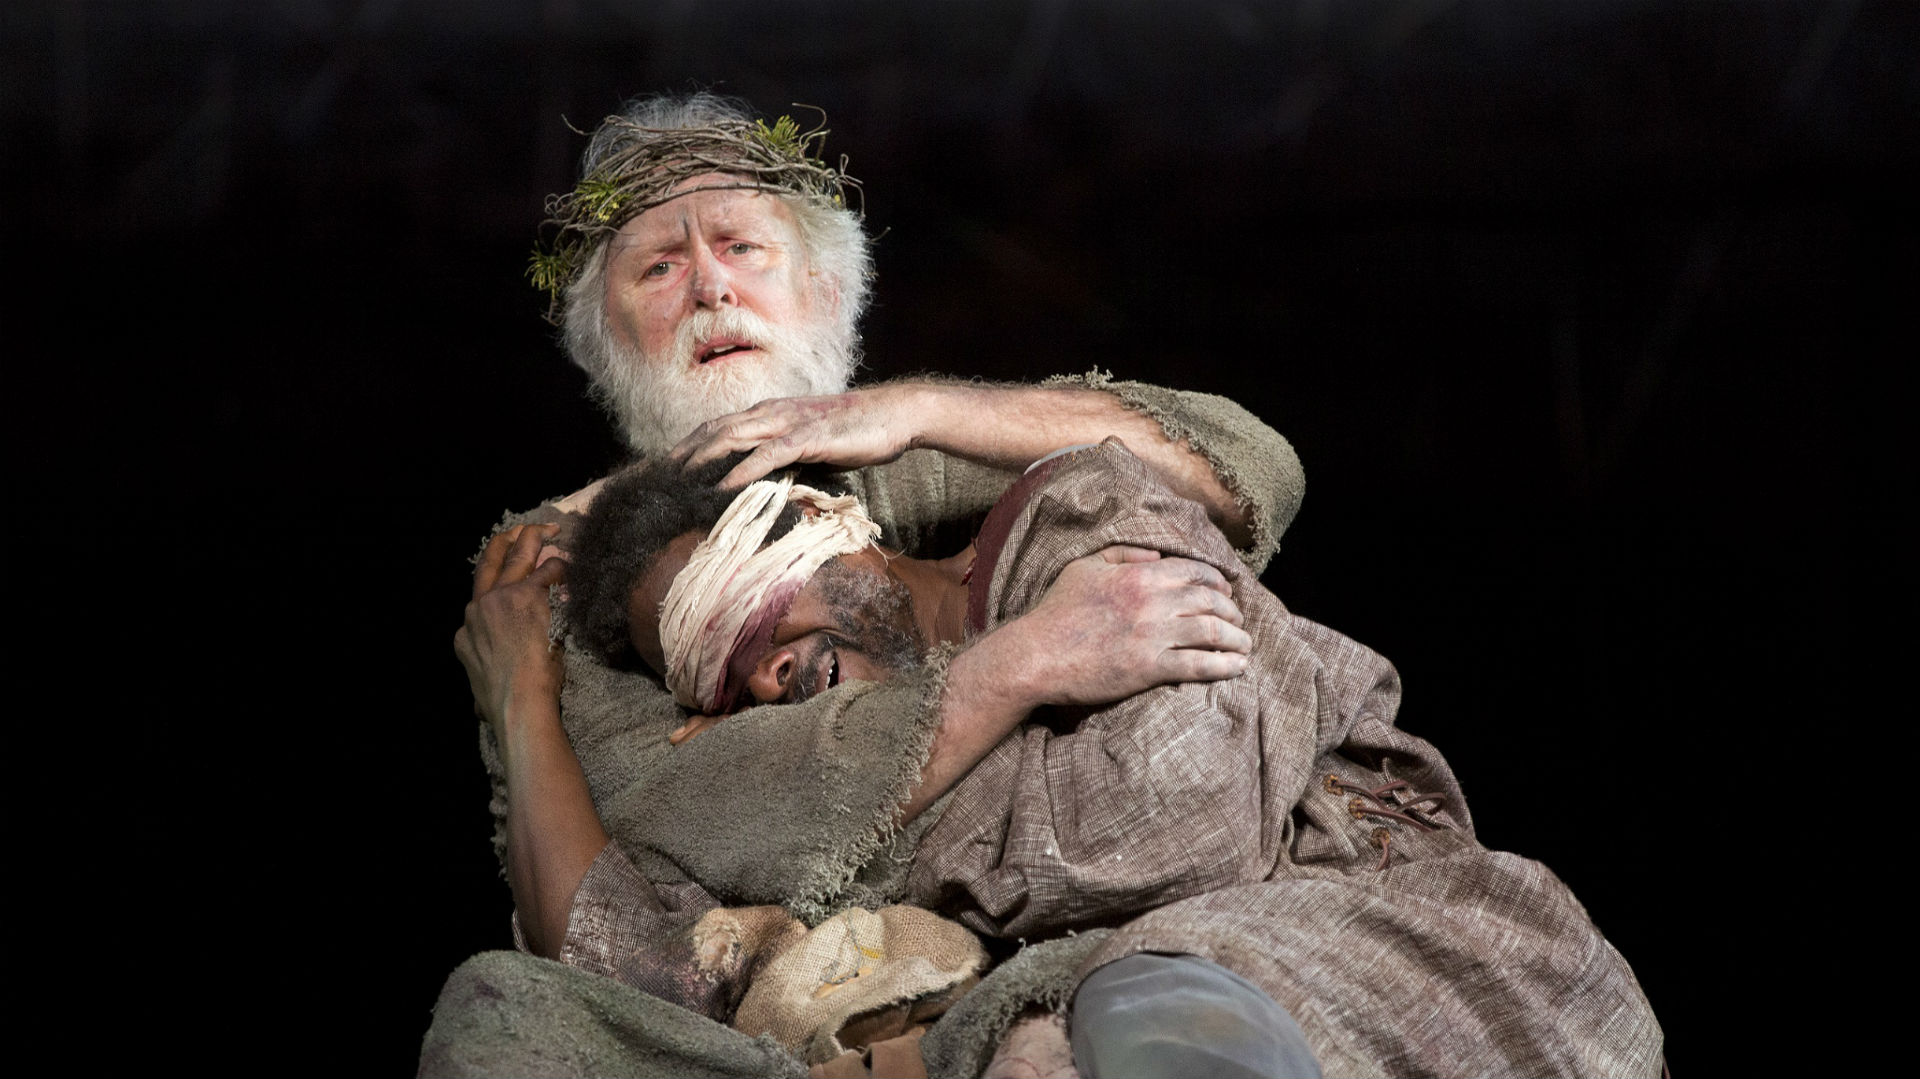 John Lithgow as King Lear from Hamlet